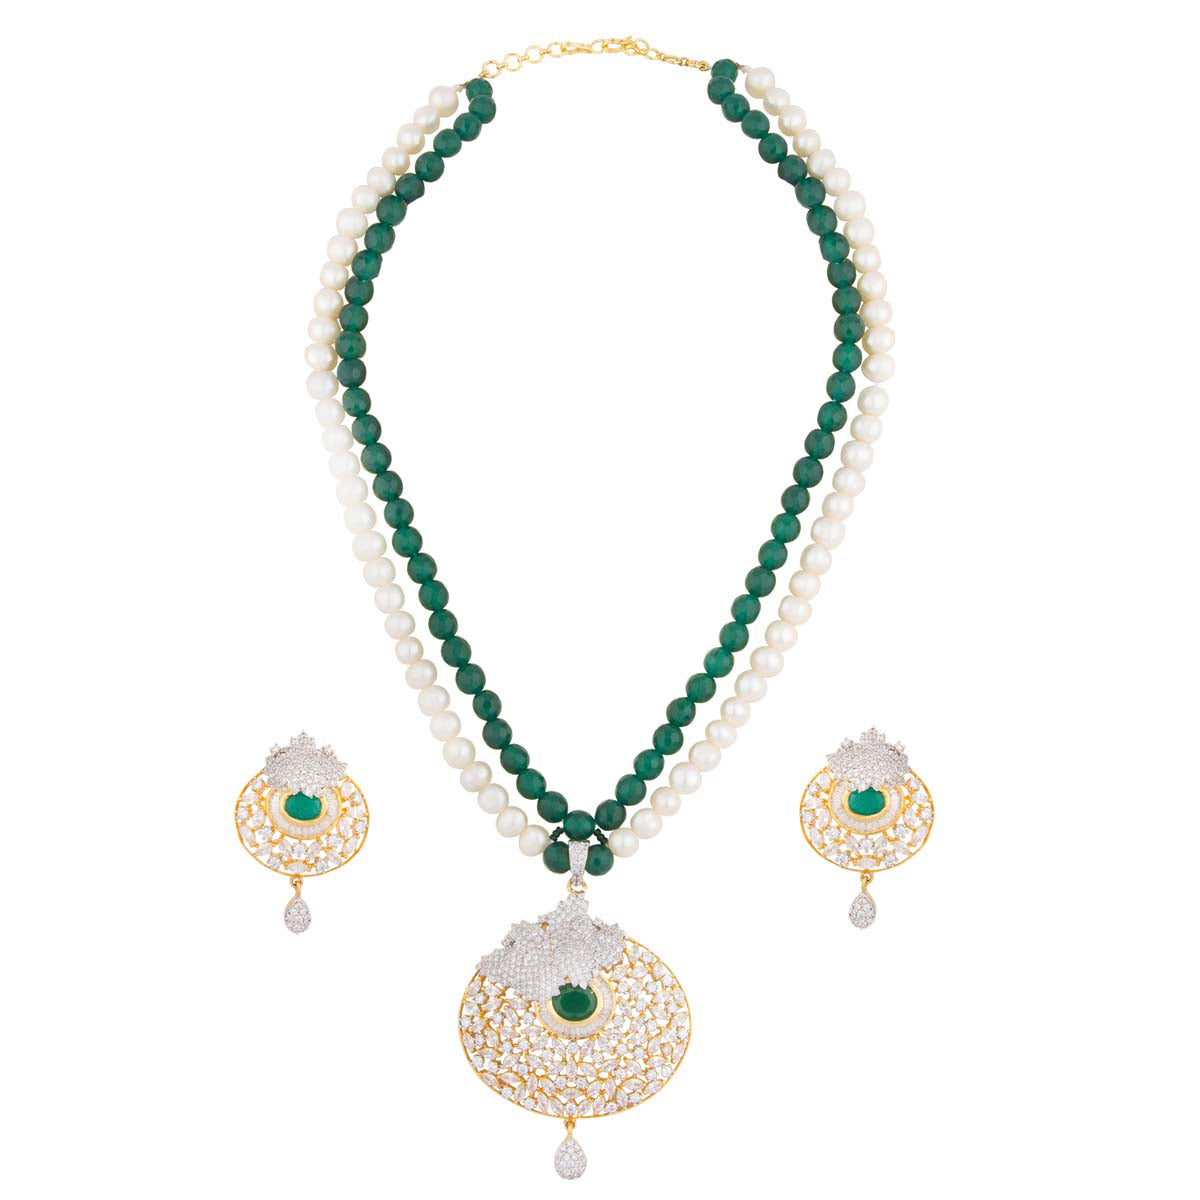 You'll be all set for the fashion police in this one! Our pearl & emerald stone necklace with a crystal emerald pendant has matching earrings and is your all accessory pass to style.